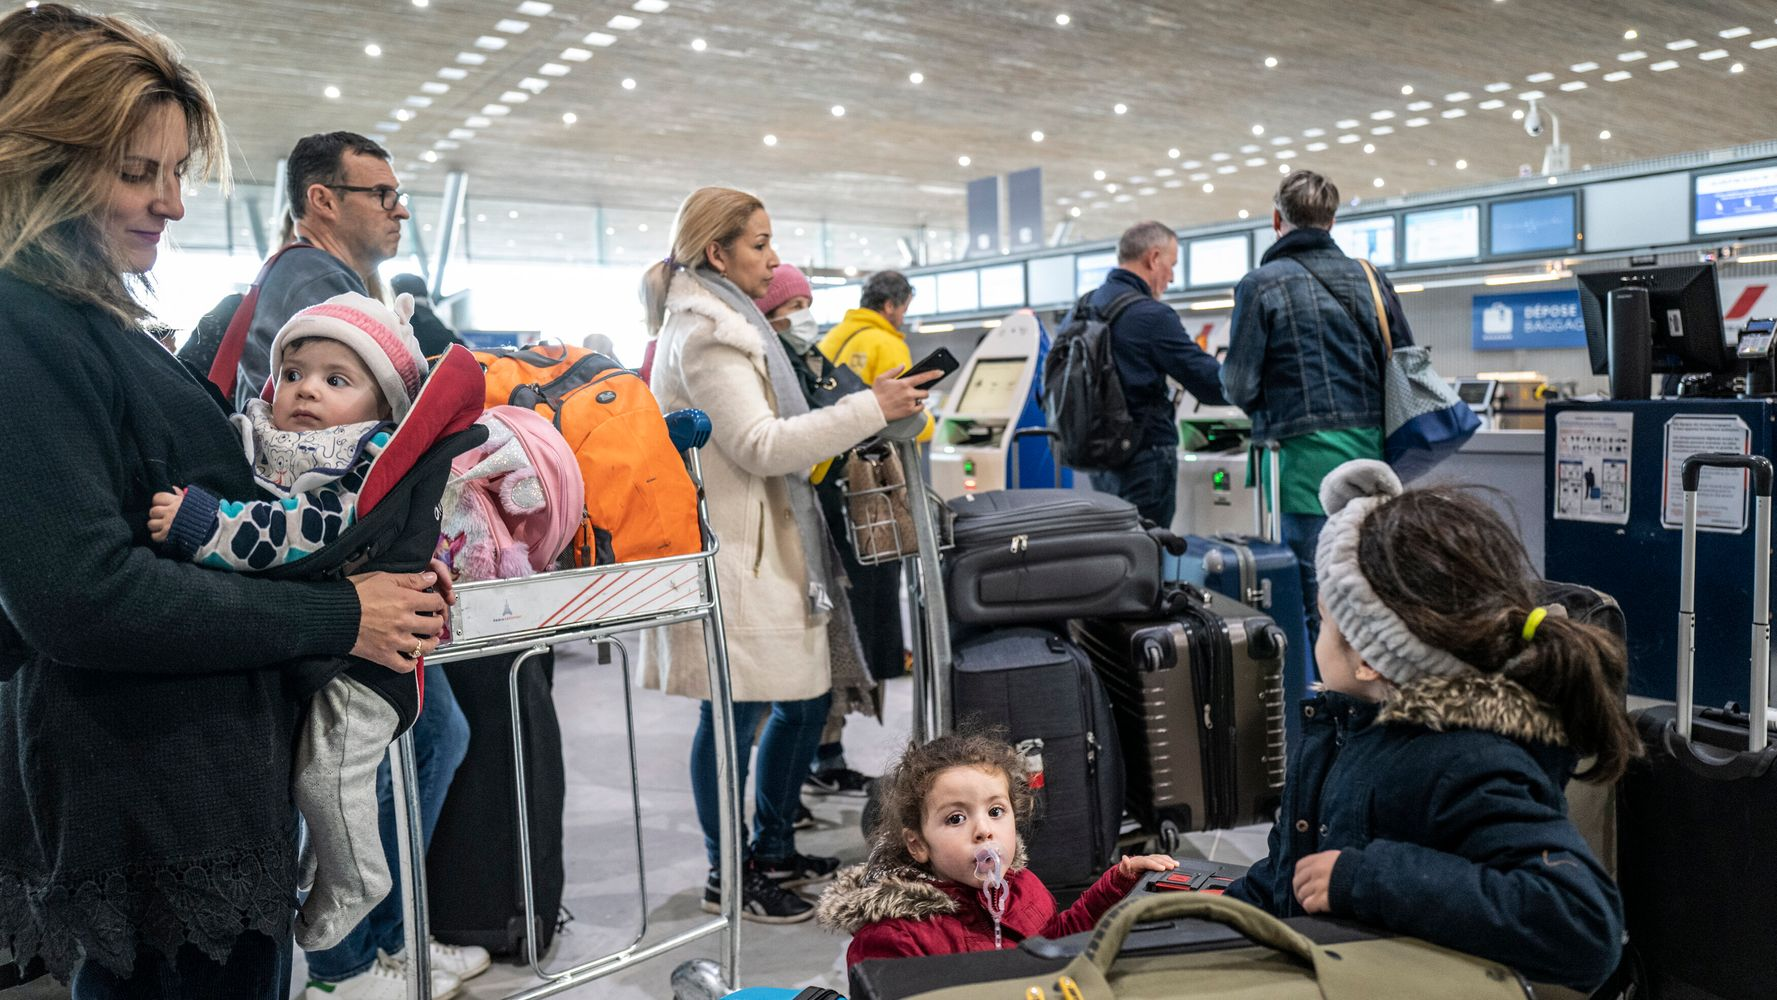 What Does Trump's European Travel Ban Mean Exactly?